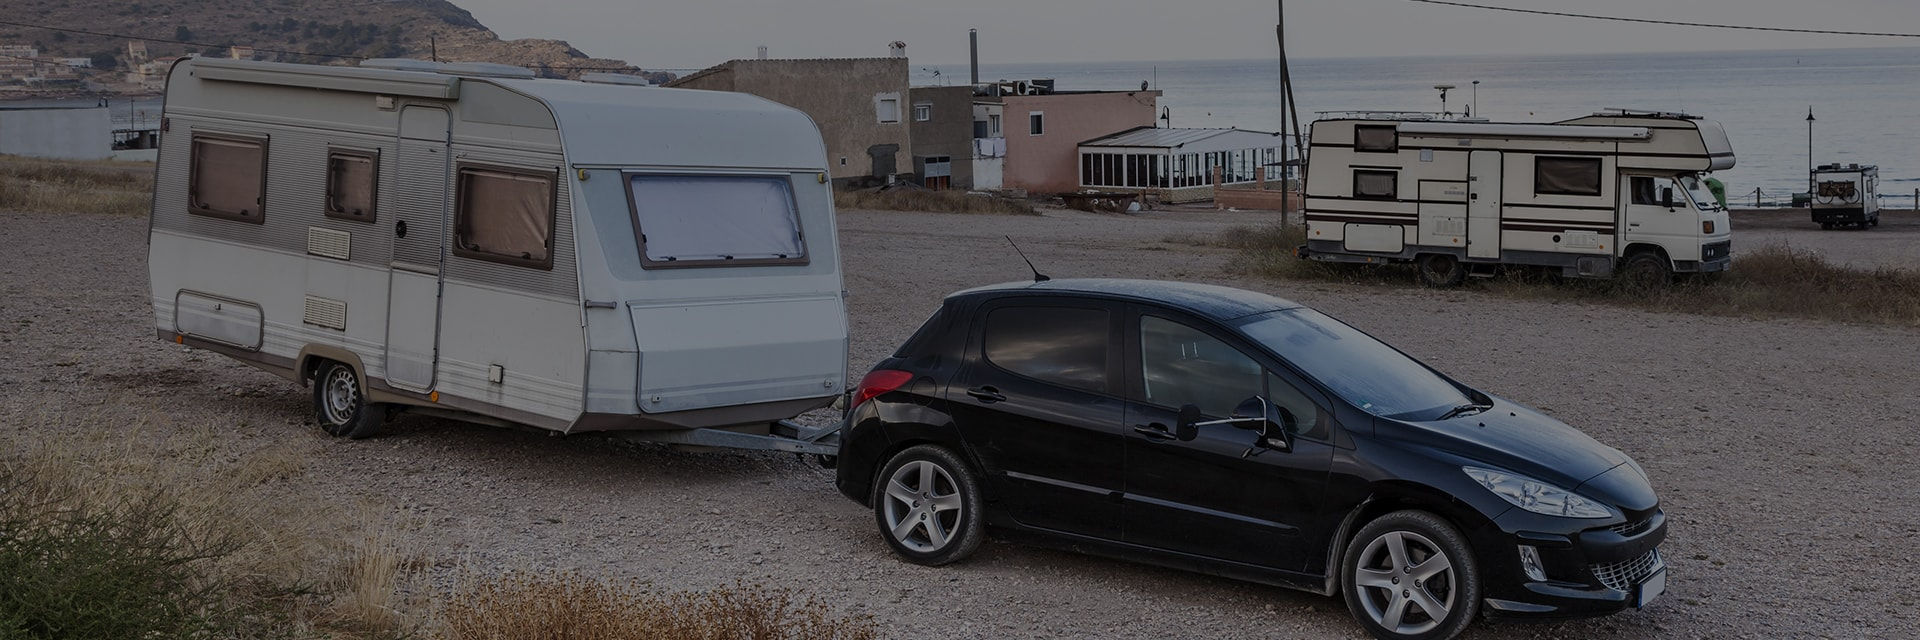 Towbar and Trailers in Bournemouth